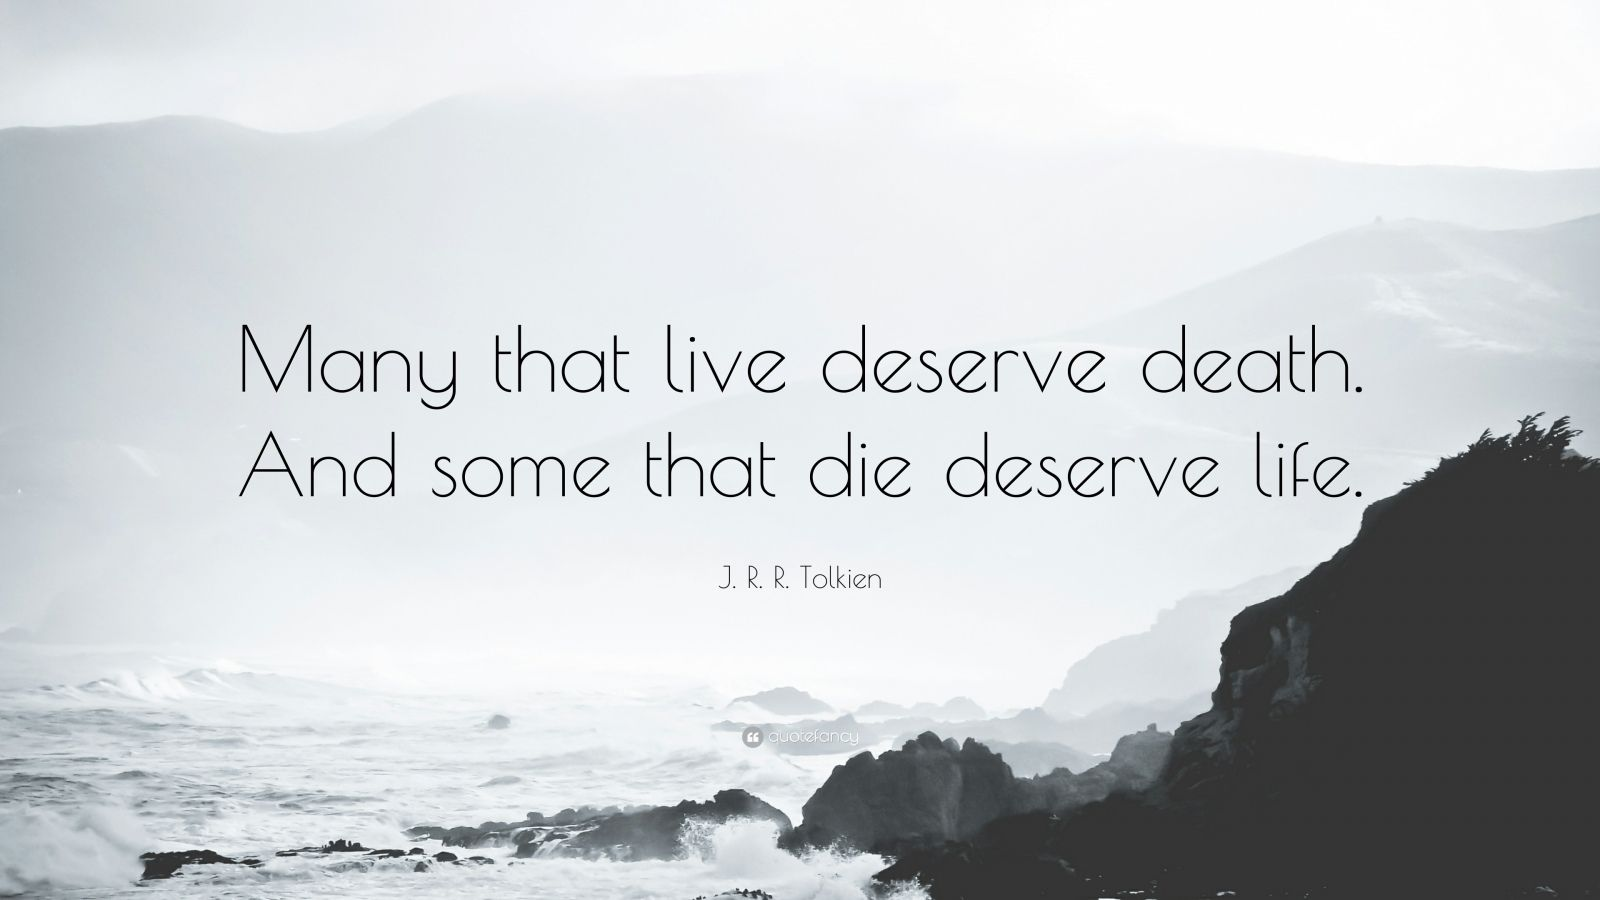 Jrr Tolkien Quotes About Life Jrrtolkien Quotes 100 Wallpapers  Quotefancy